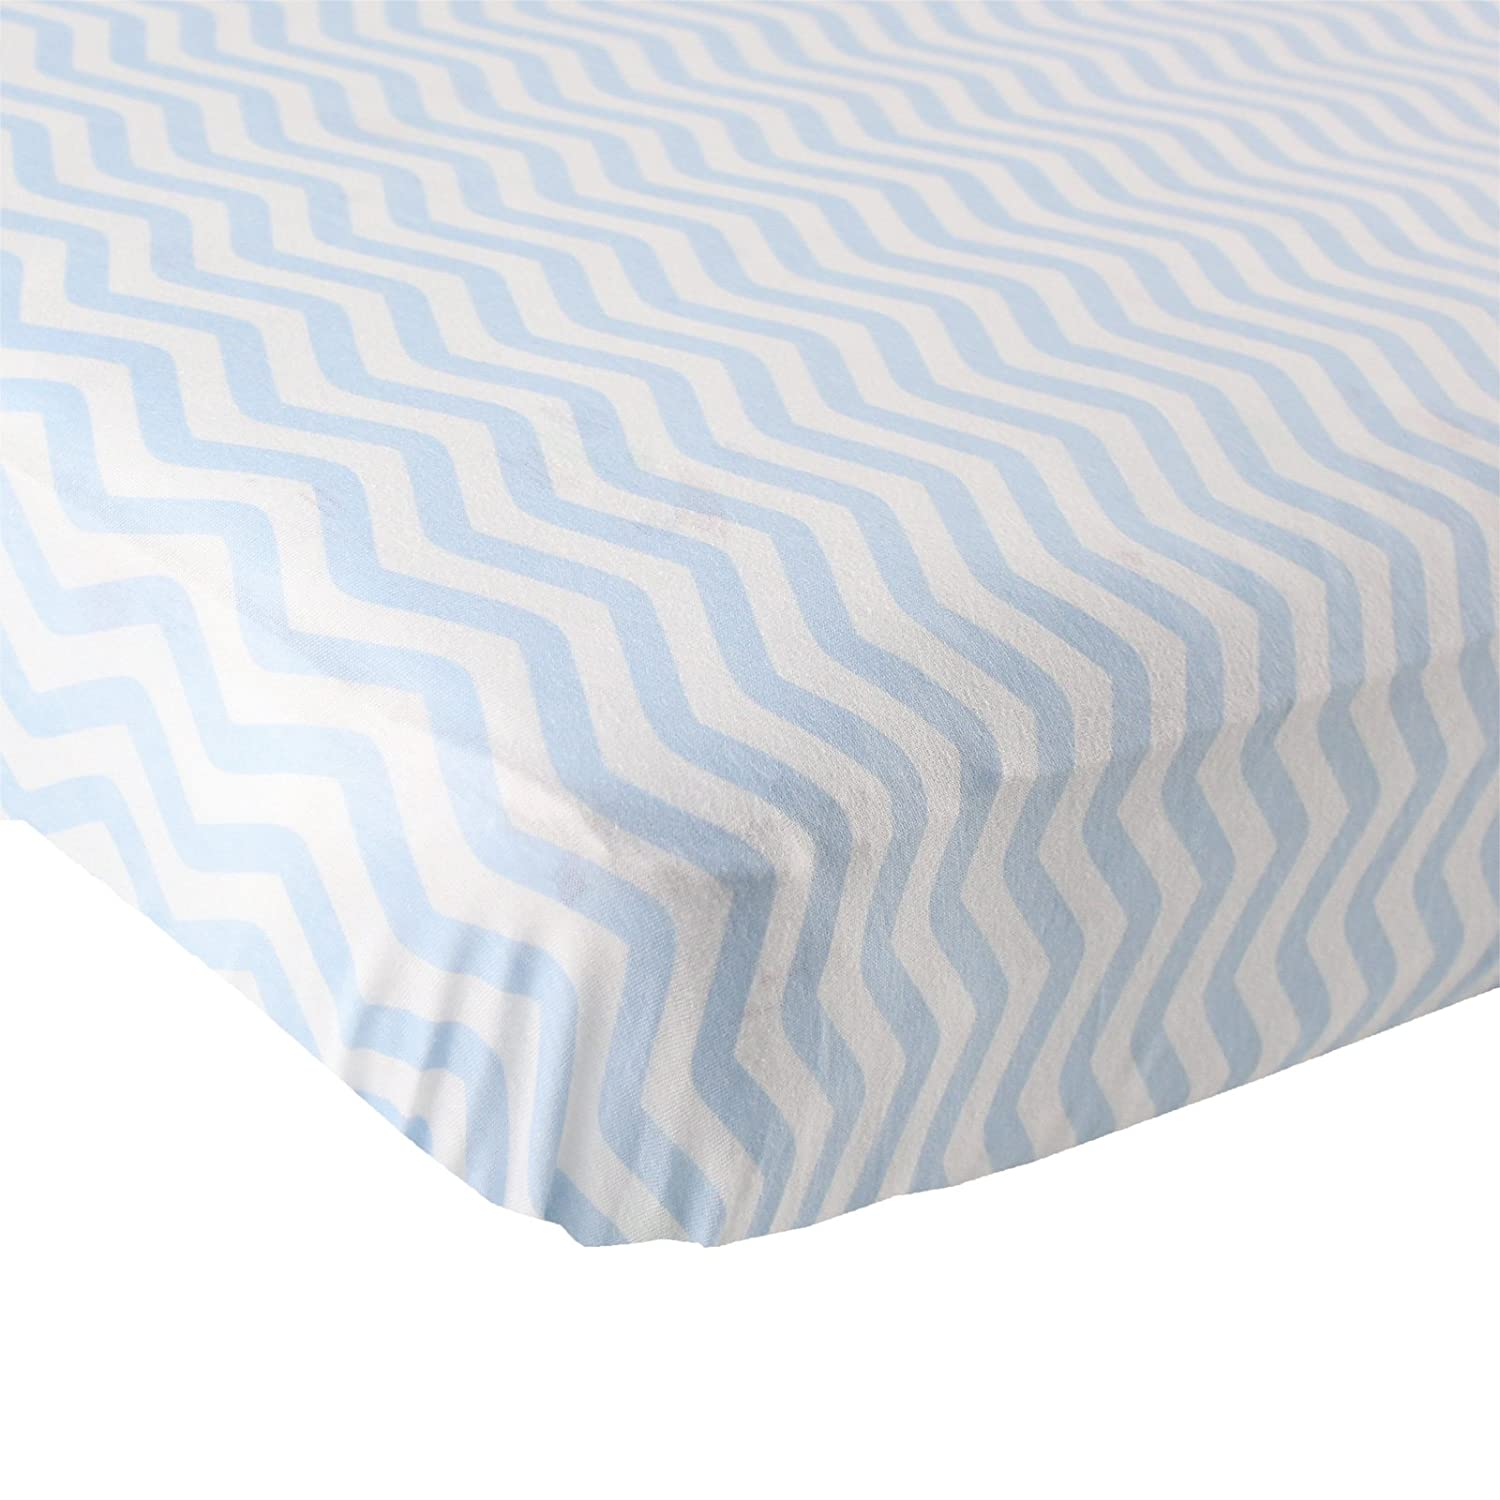 Luvable Friends Fitted Knit Cotton Crib Sheet, Blue Chevron BabyVision 40125_BlueChevron